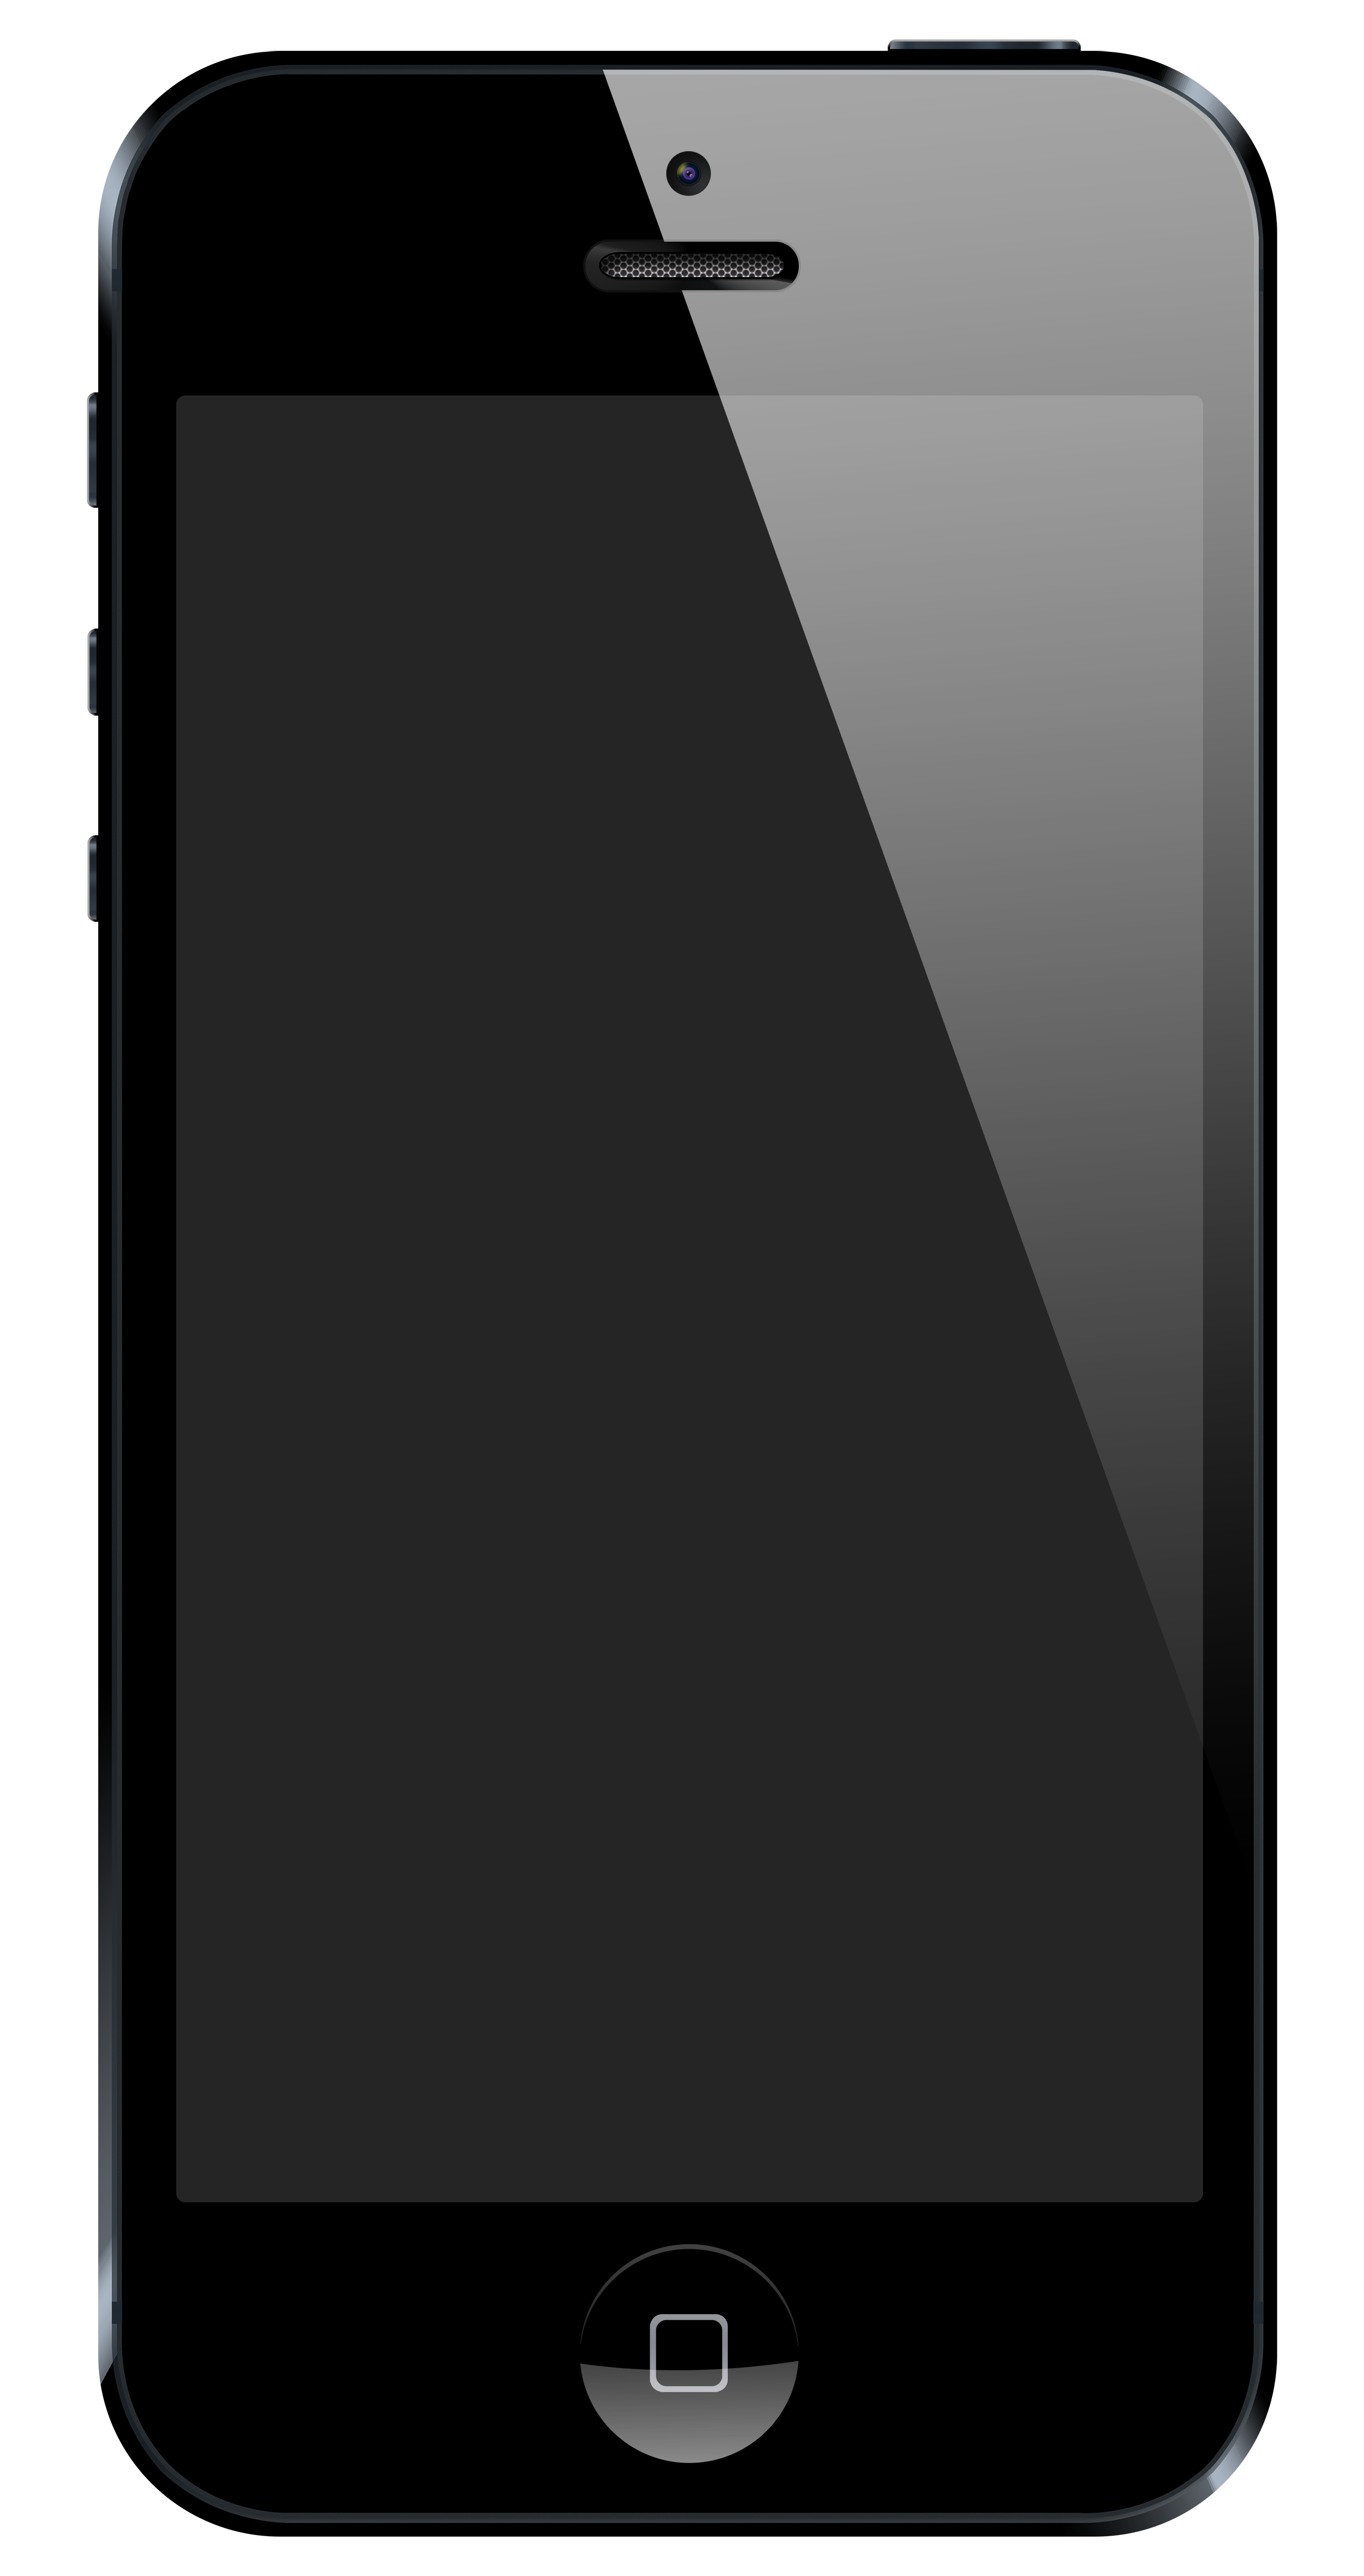 Iphone HD PNG - 95206